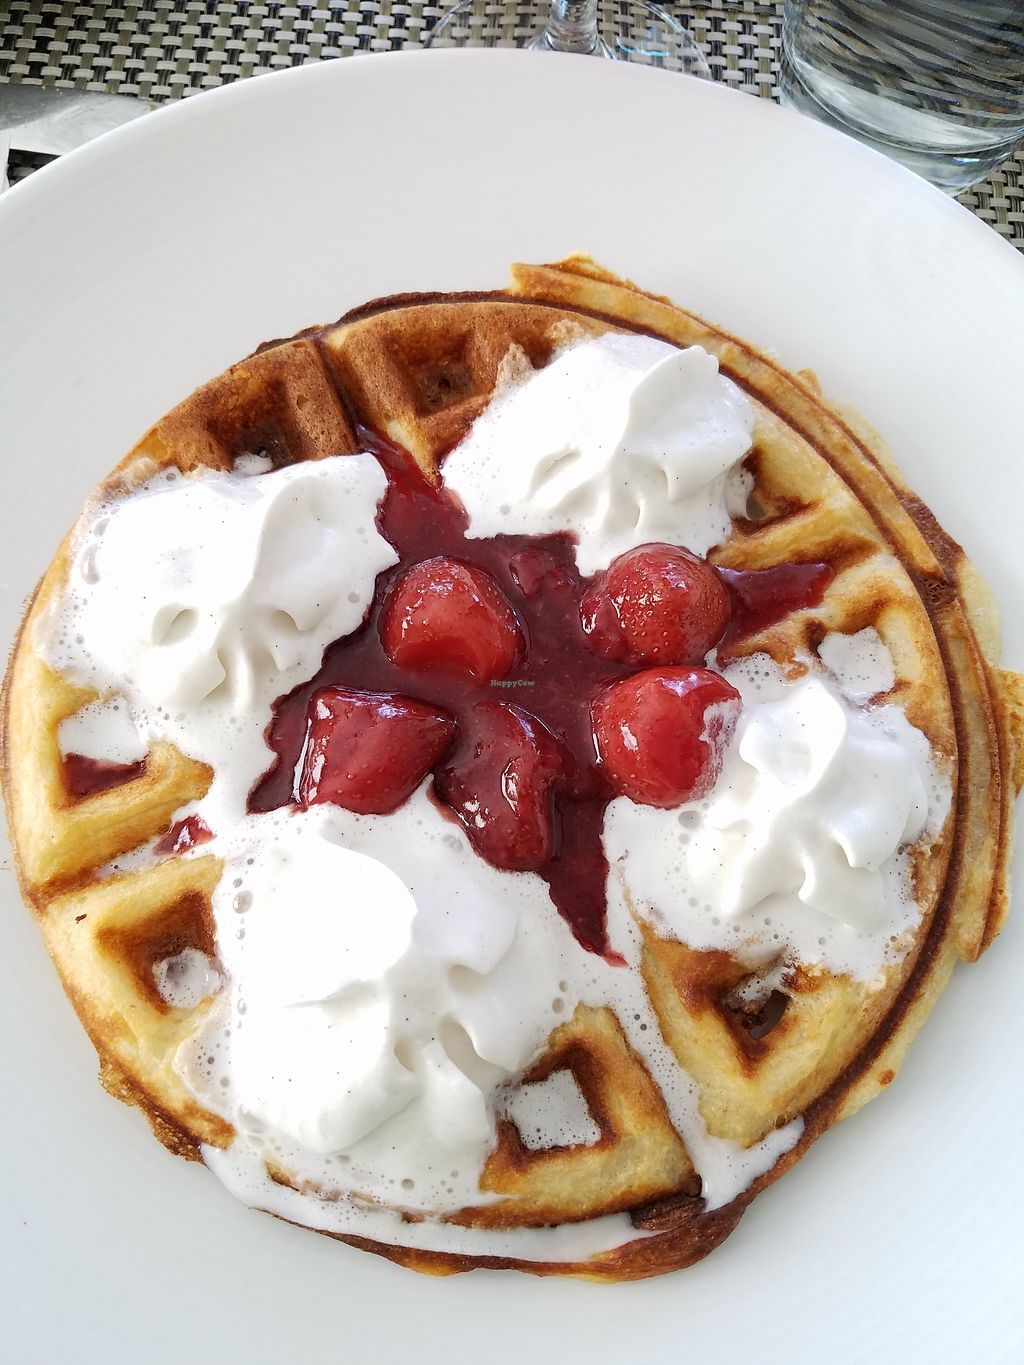 """Photo of True Bistro  by <a href=""""/members/profile/MoniqueGS"""">MoniqueGS</a> <br/>Strawberry Waffle <br/> July 17, 2017  - <a href='/contact/abuse/image/24373/281437'>Report</a>"""